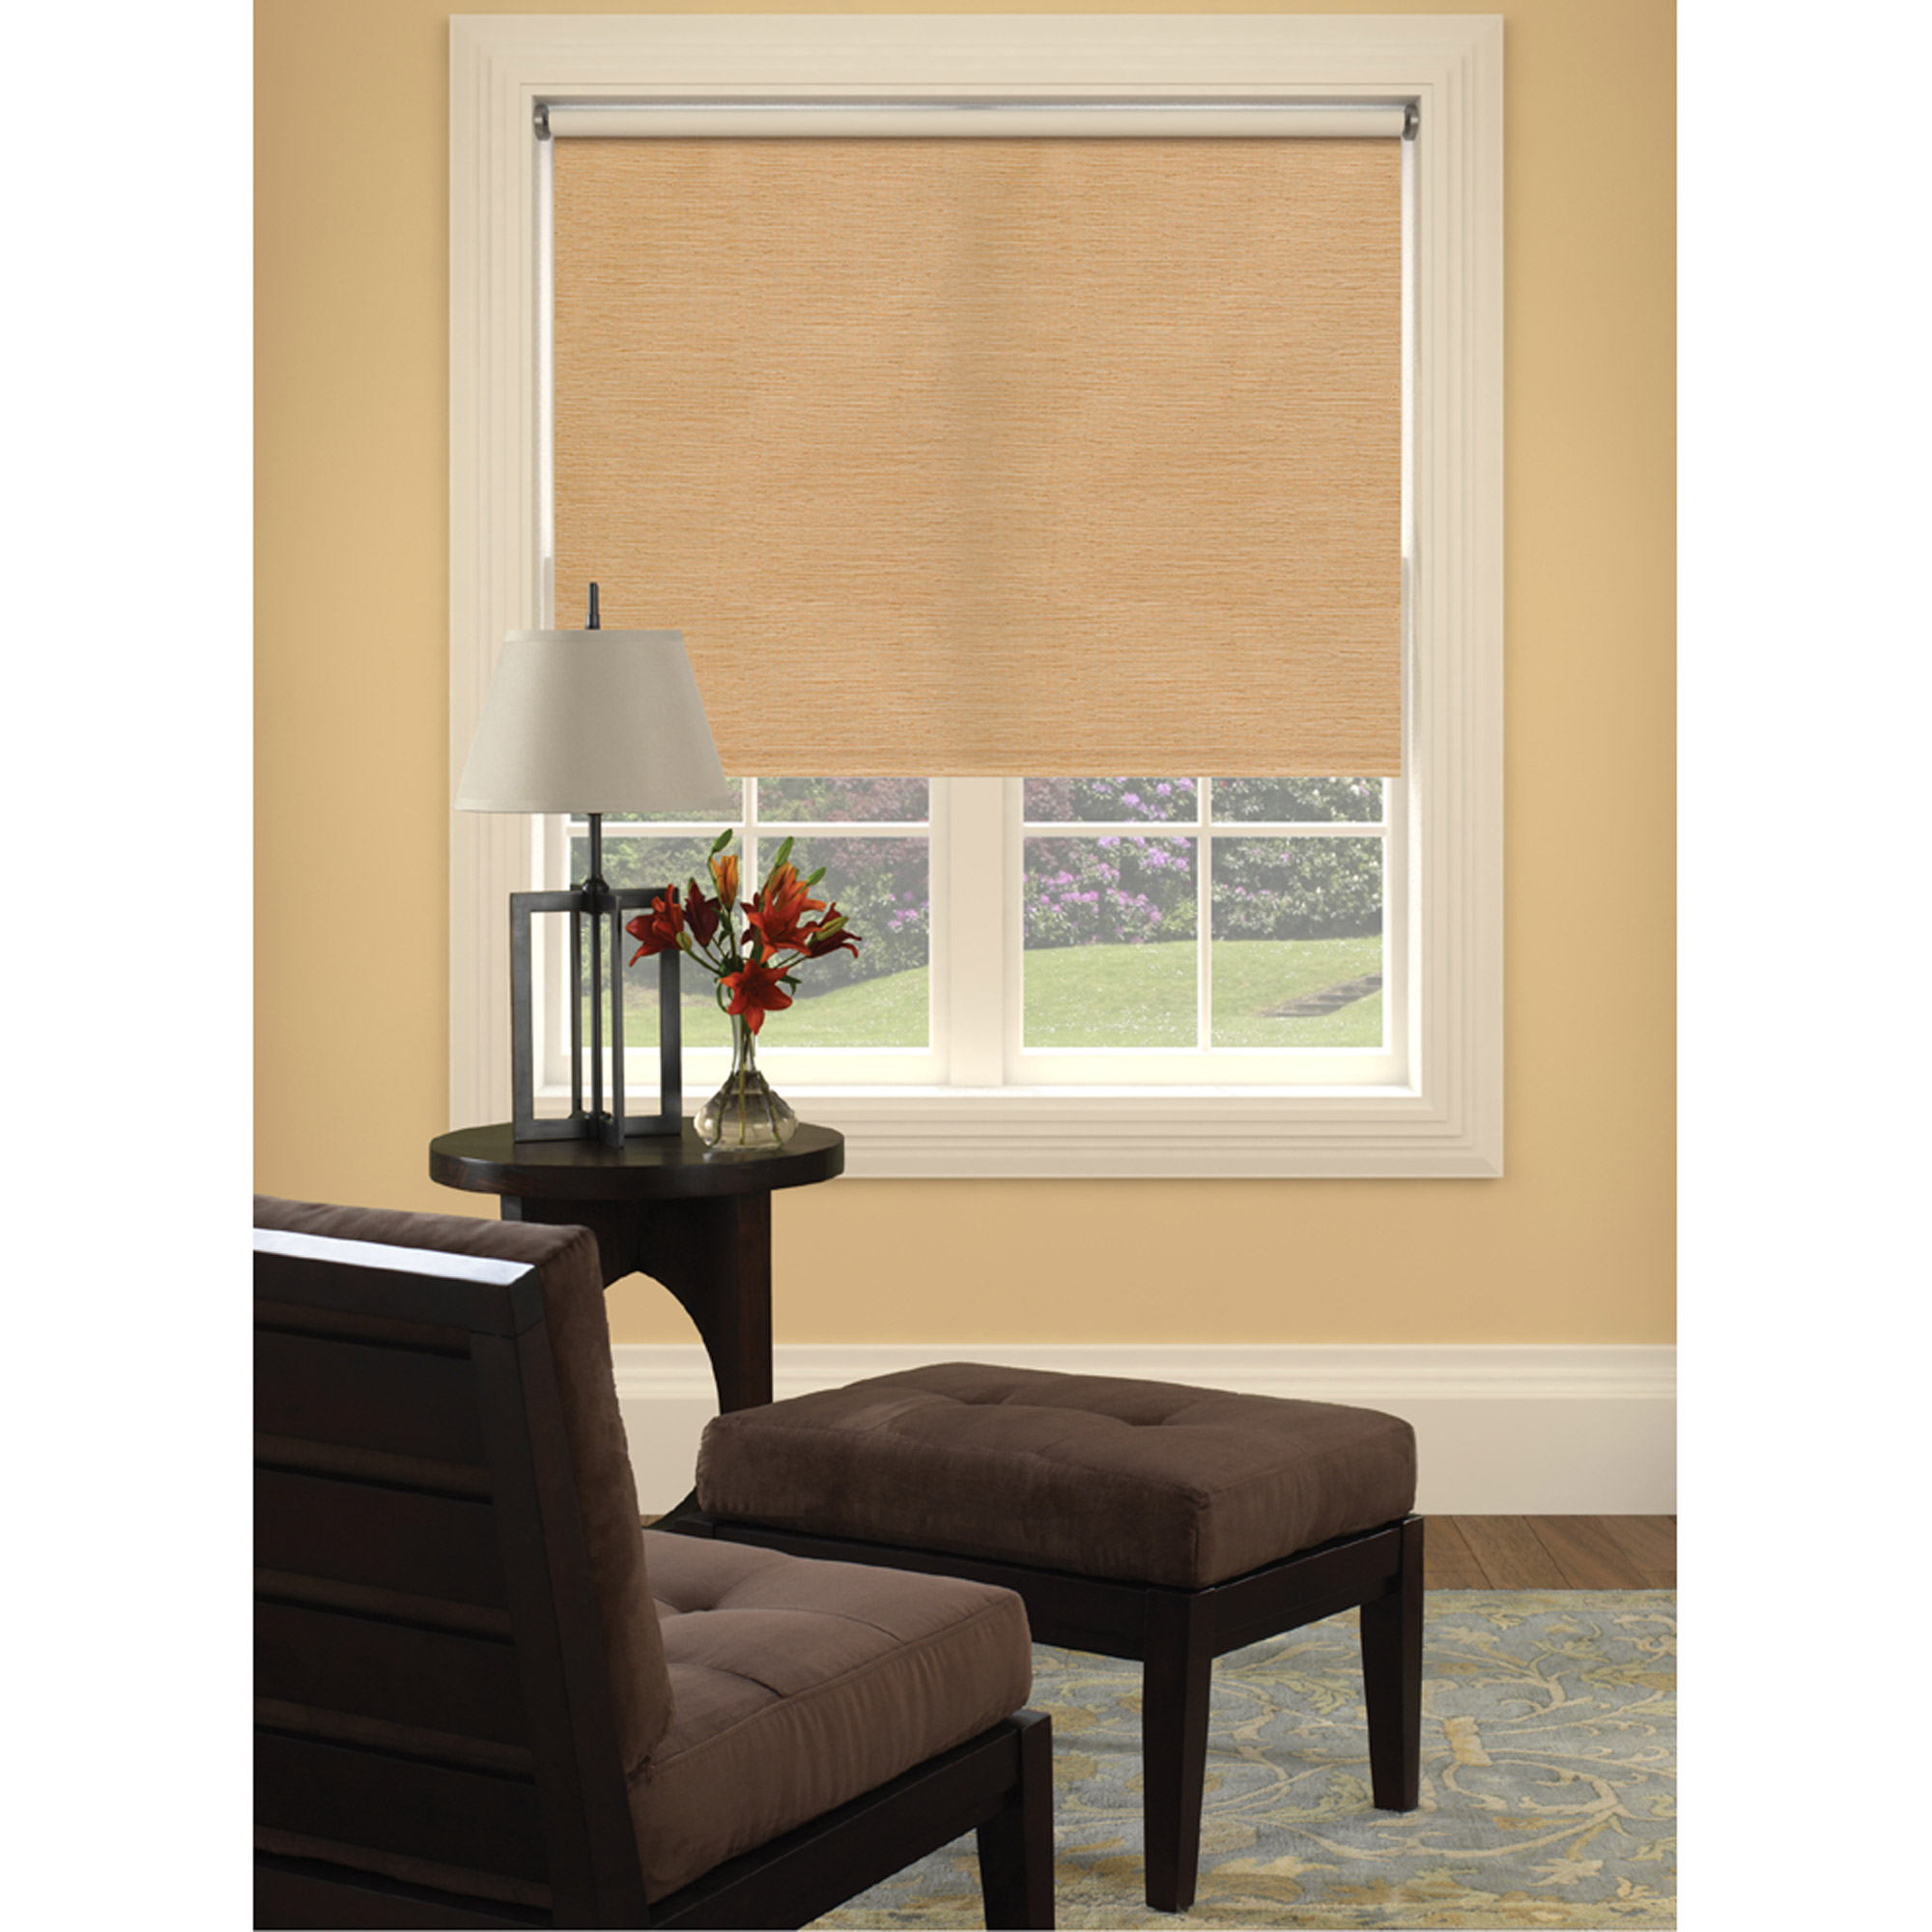 Bali Size-at-Home Vinyl Roller Shade, Reed Natural